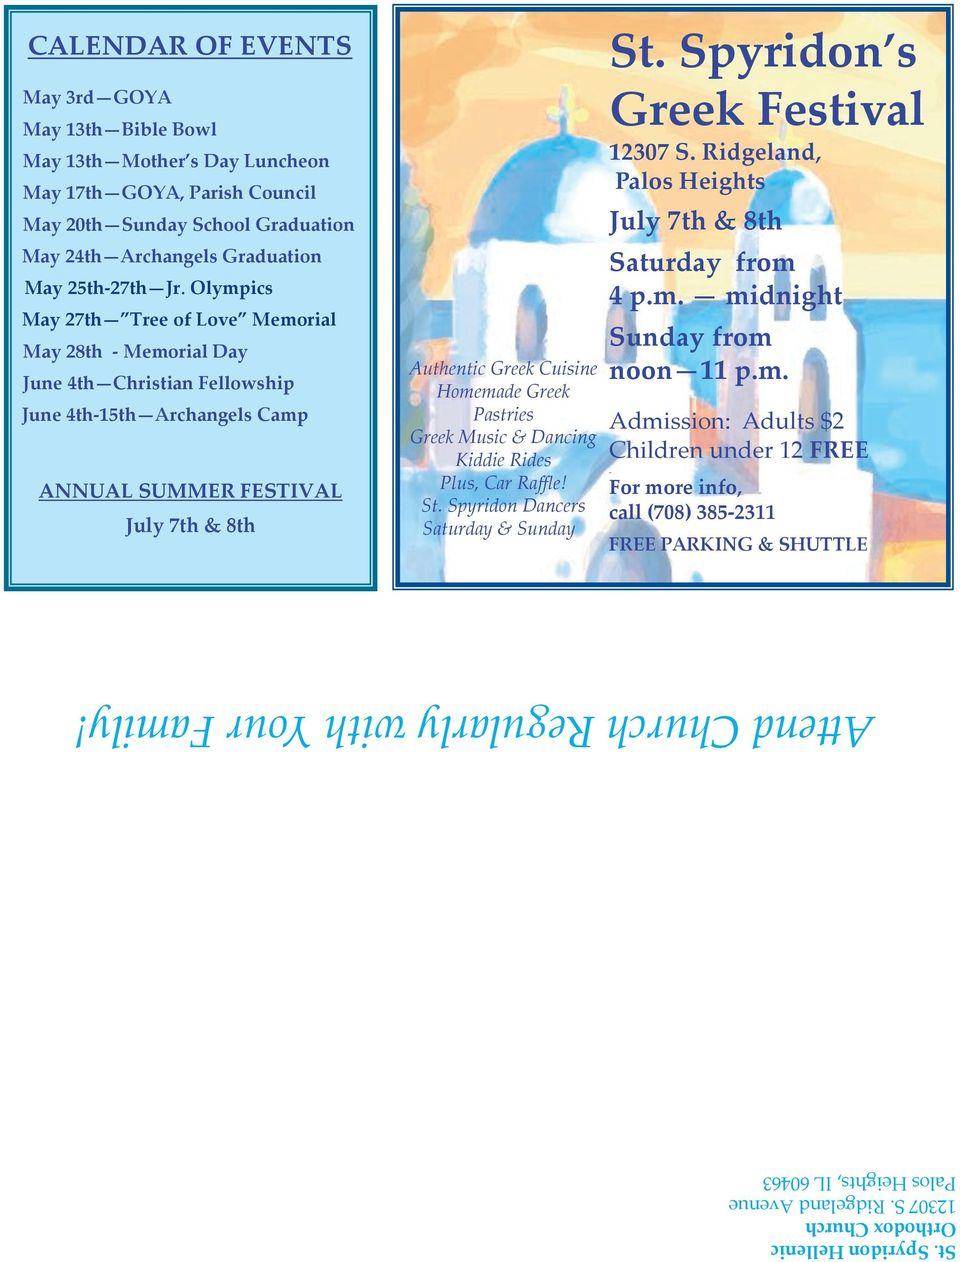 Olympics May 27th Tree of Love Memorial May 28th - Memorial Day June 4th Christian Fellowship June 4th-15th Archangels Camp ANNUAL SUMMER FESTIVAL July 7th & 8th Authentic Greek Cuisine Homemade